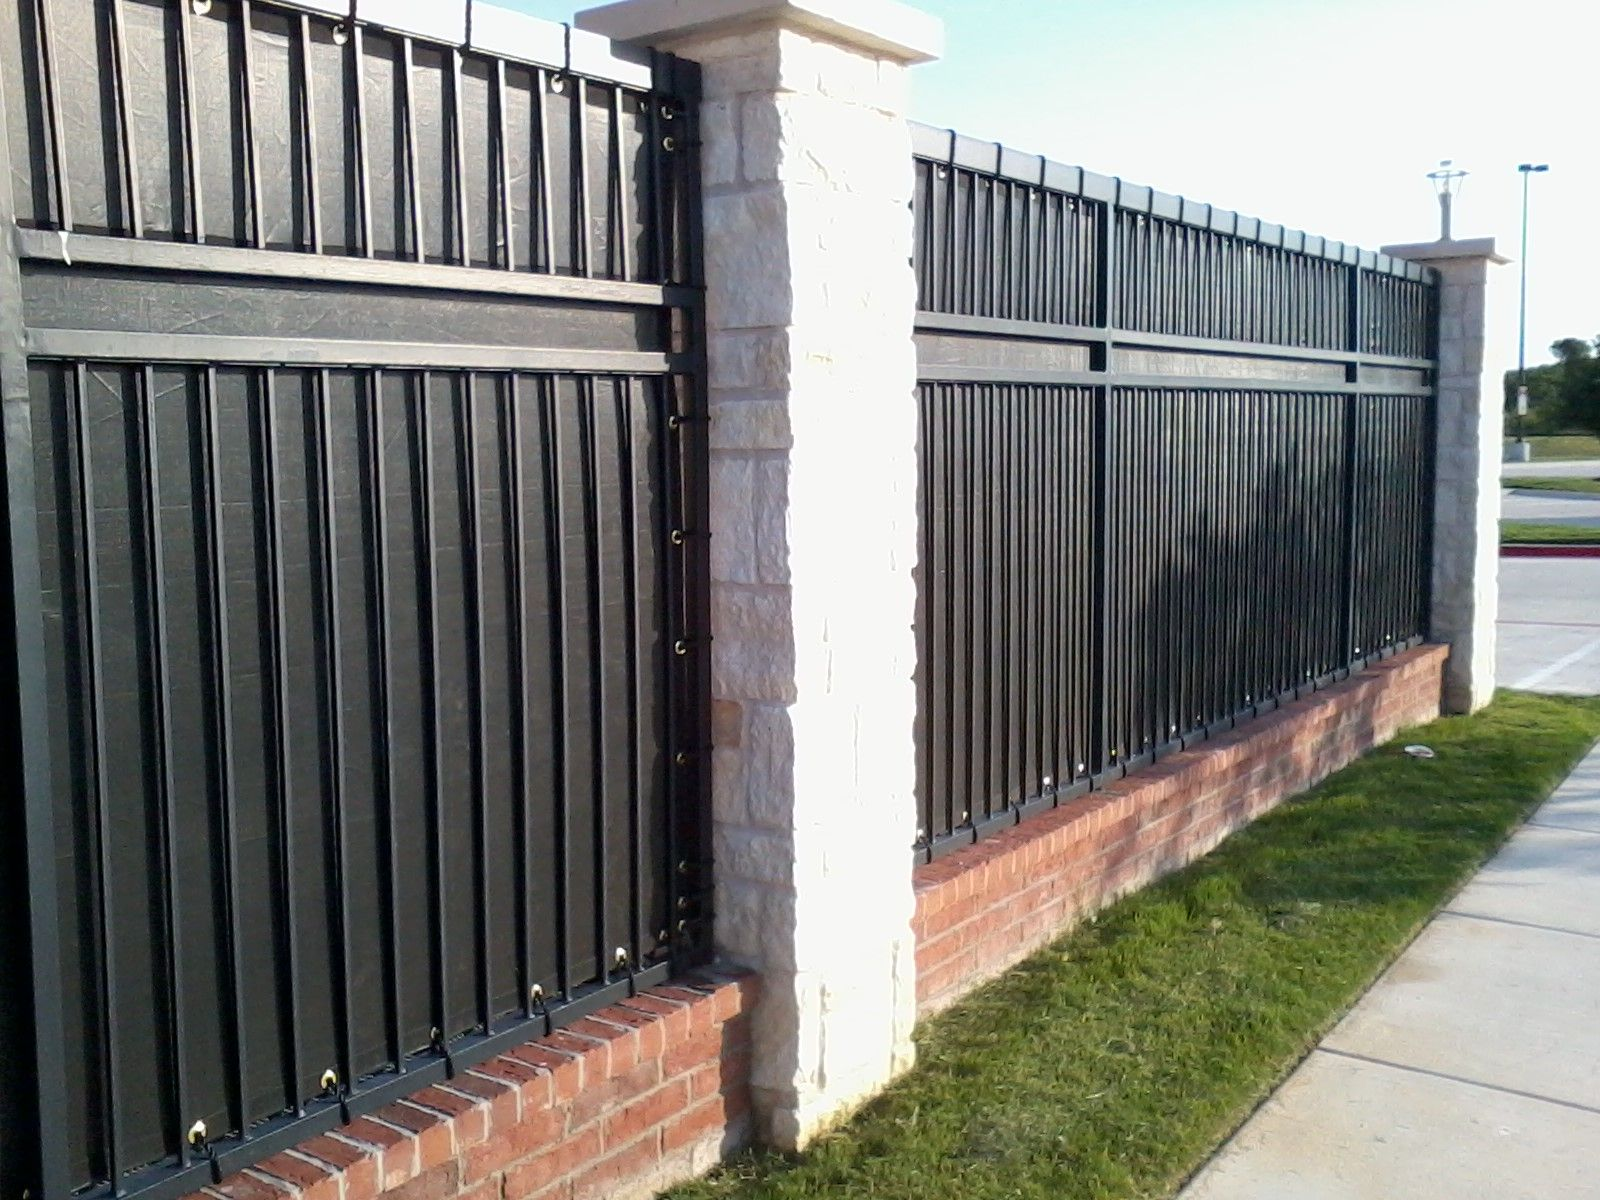 Metal Privacy Fence Panels Decoration Building Metal Privacy Inside Dimensions 1600 X 903 Privac Wrought Iron Fence Panels Iron Fence Panels Metal Fence Panels